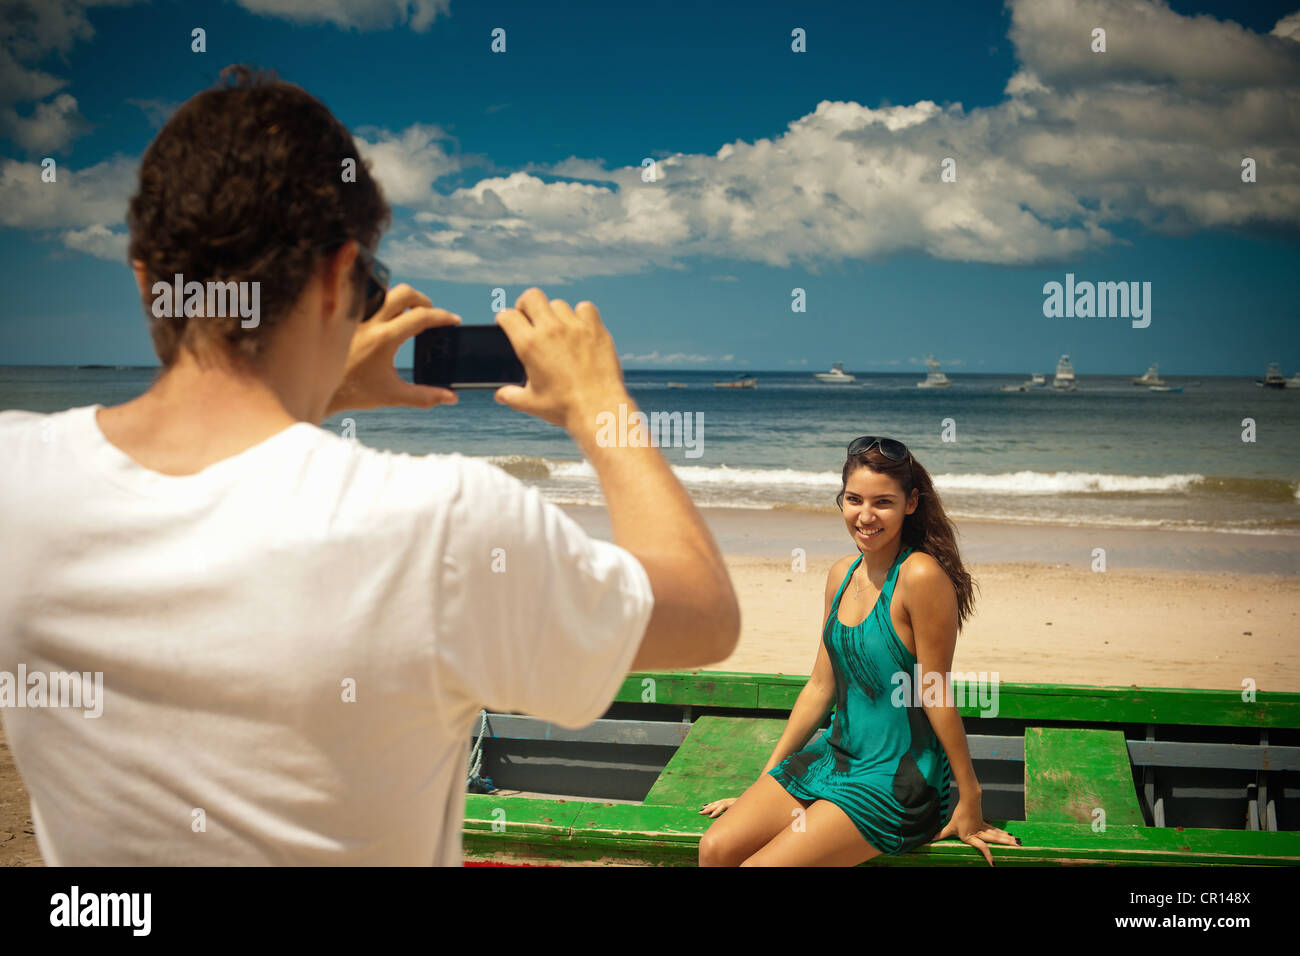 Man taking picture of girlfriend - Stock Image